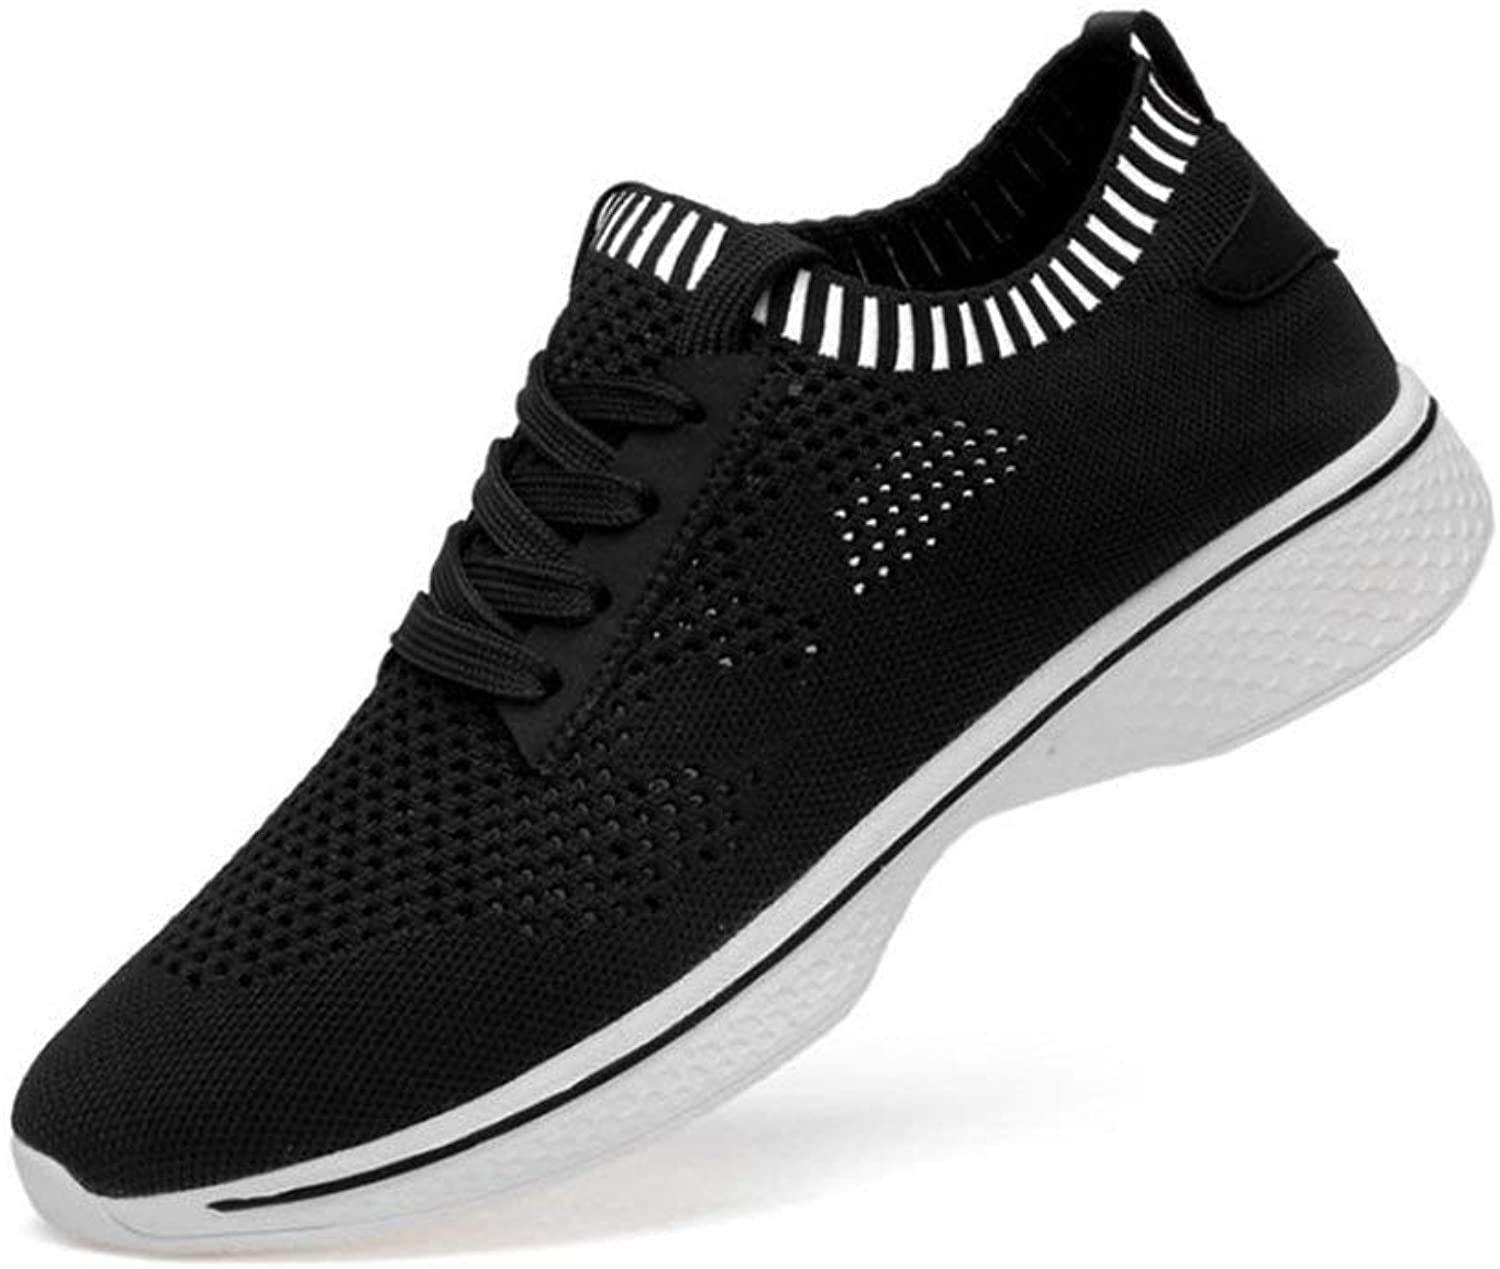 FuweiEncore Men's Sneakers, Summer New Plain Mesh Sneakers, Men's Breathable Outdoor Casual Men's shoes, Comfortable Running shoes, Black, 37 (color   As shown, Size   One size)